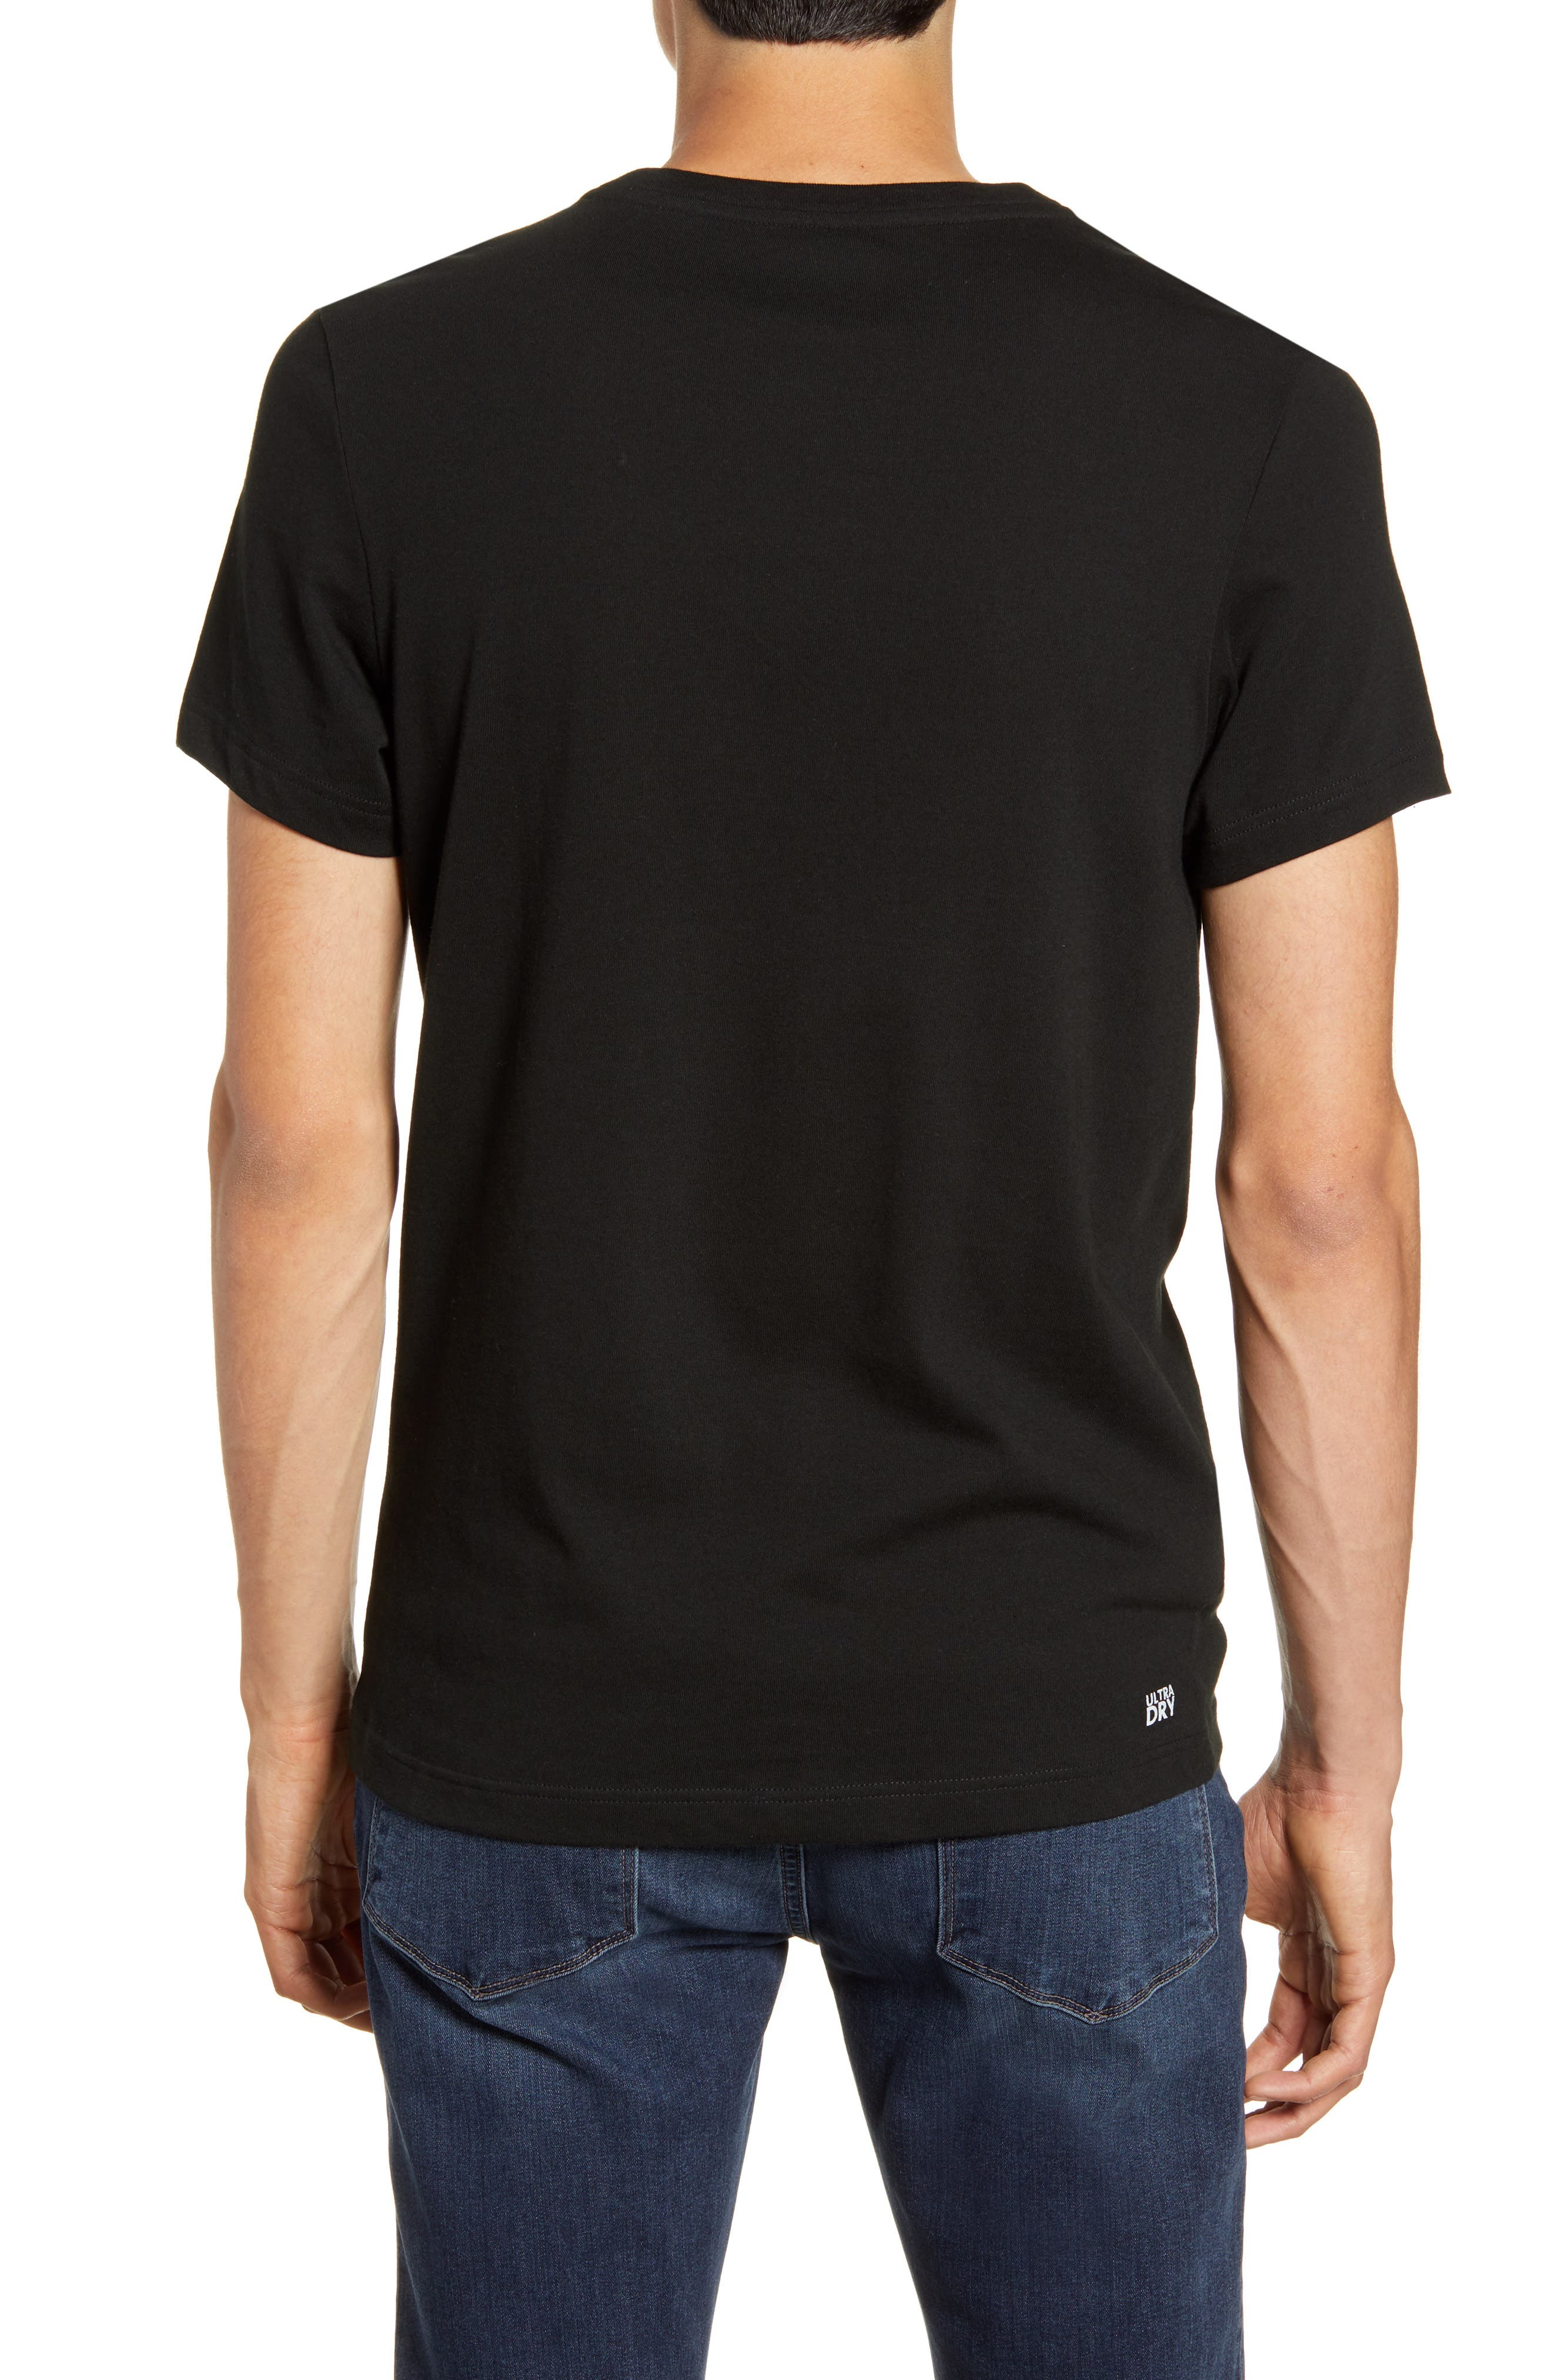 5df388e0 Men's Lacoste T-Shirts, Tank Tops, & Graphic Tees | Nordstrom